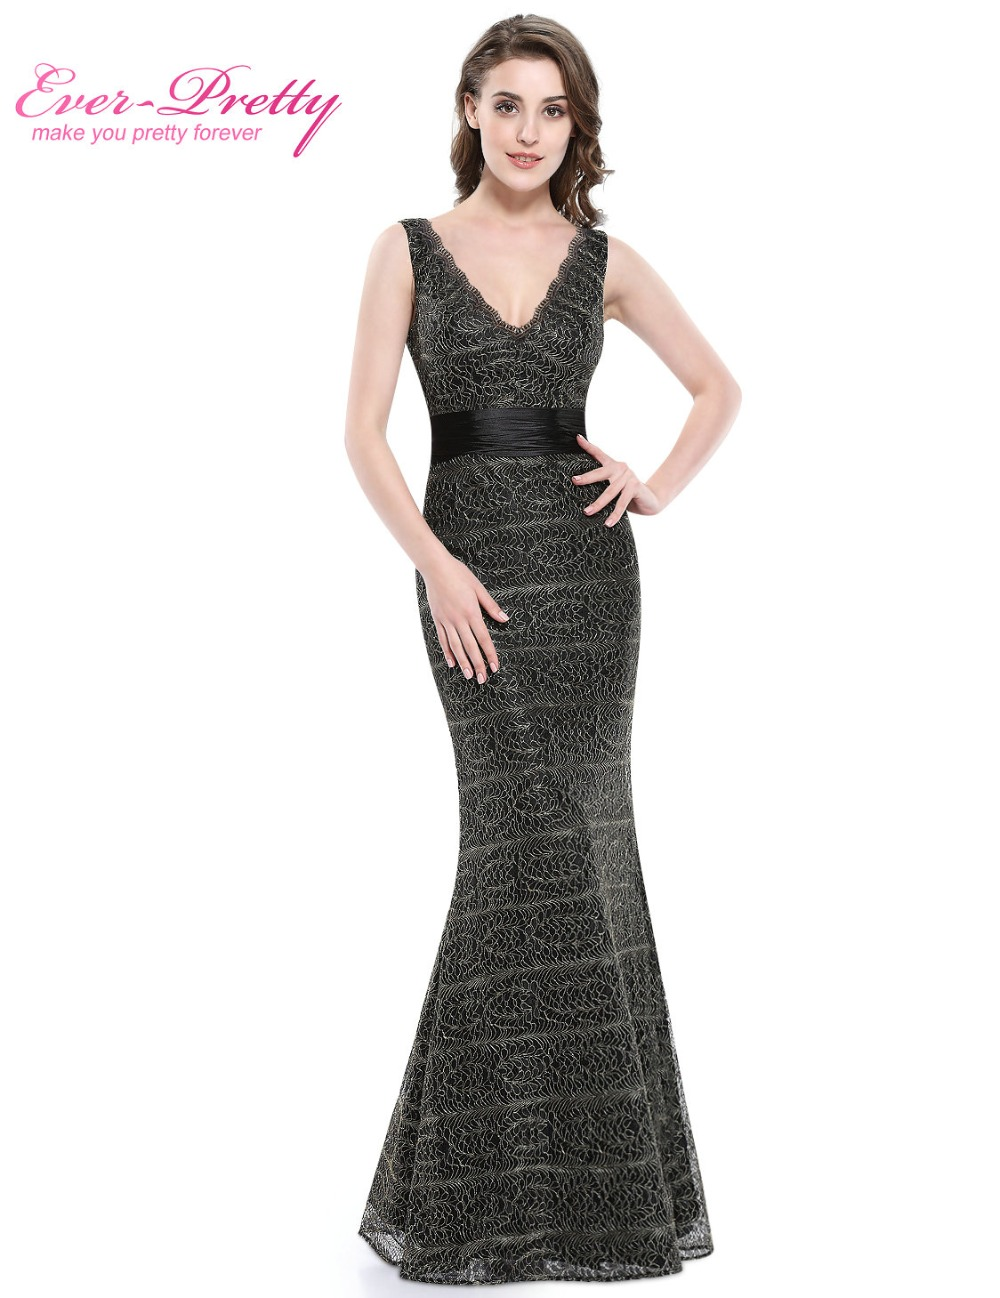 d07ca90506 Formal Elegant Winter Long Sleeve Evening Dresses Clearance sale Navy Blue  V Neck HE09887 Fast Shipping Vestido Longo-in Evening Dresses from Weddings  ...